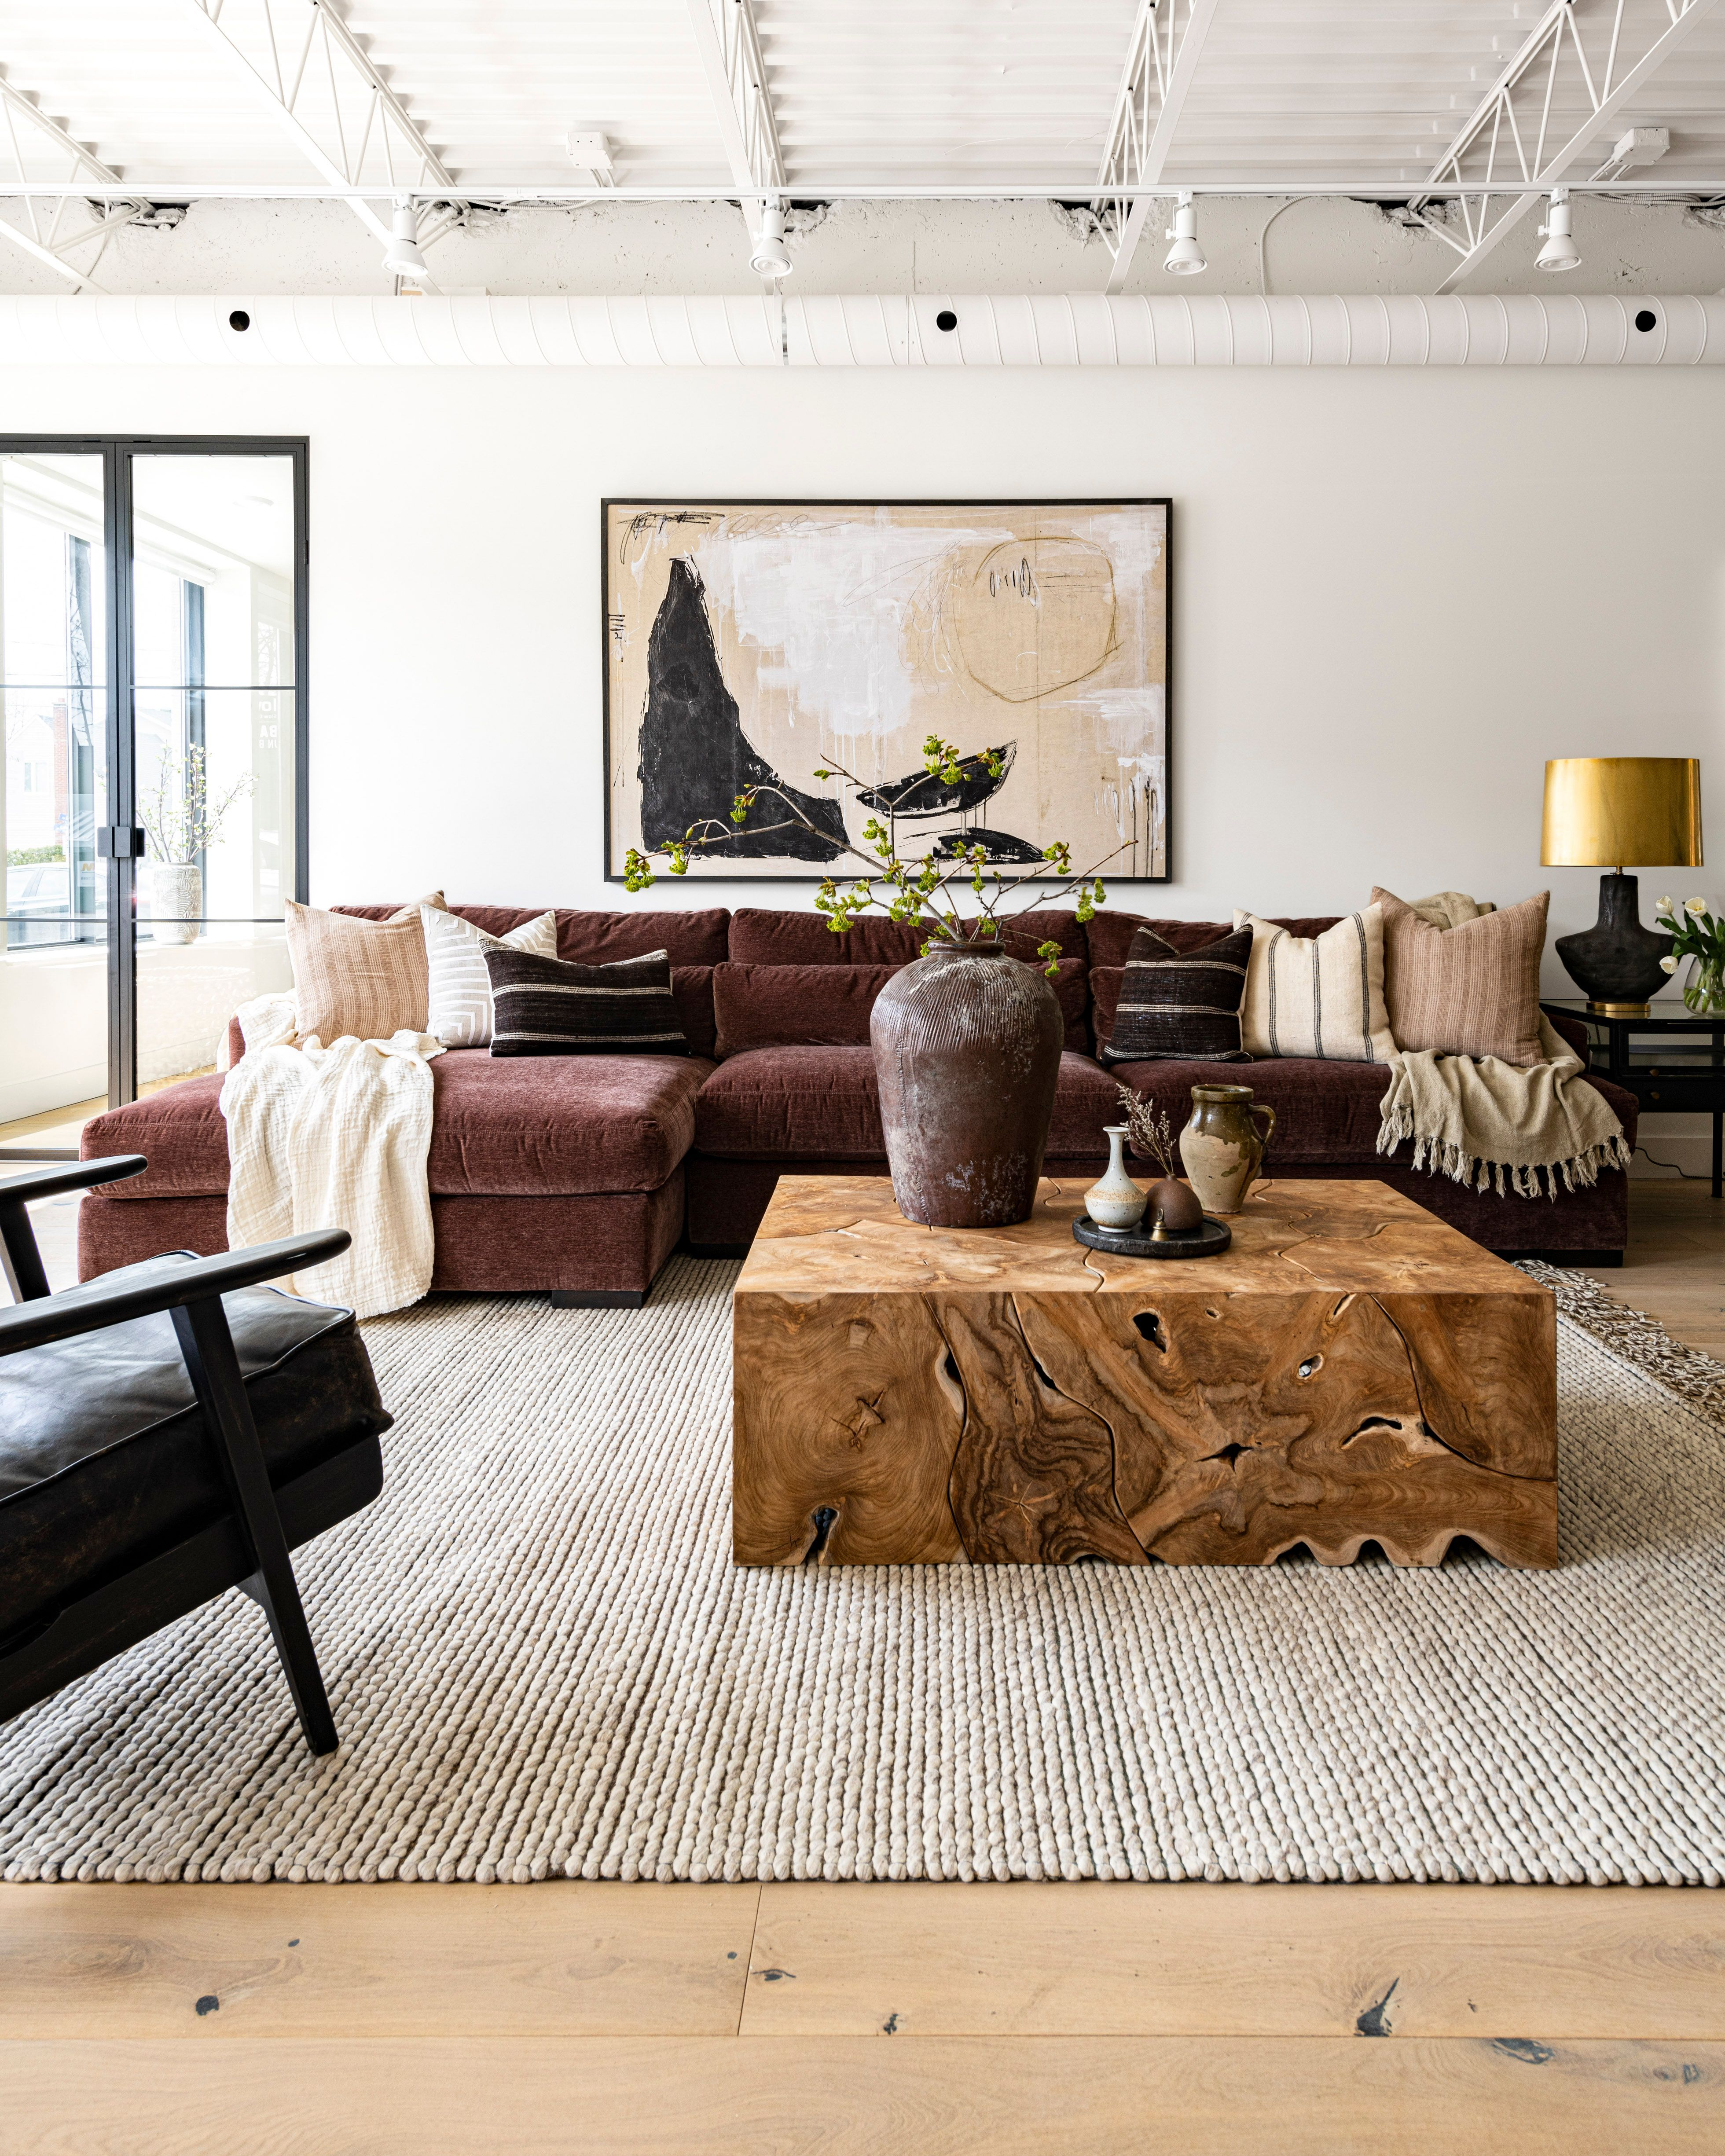 Warm Tones Natural Materials Organic Textures Our Fall Collection Is Here Shop Now To Get 15 Off Sitewide House Interior Living Room Designs Home Decor